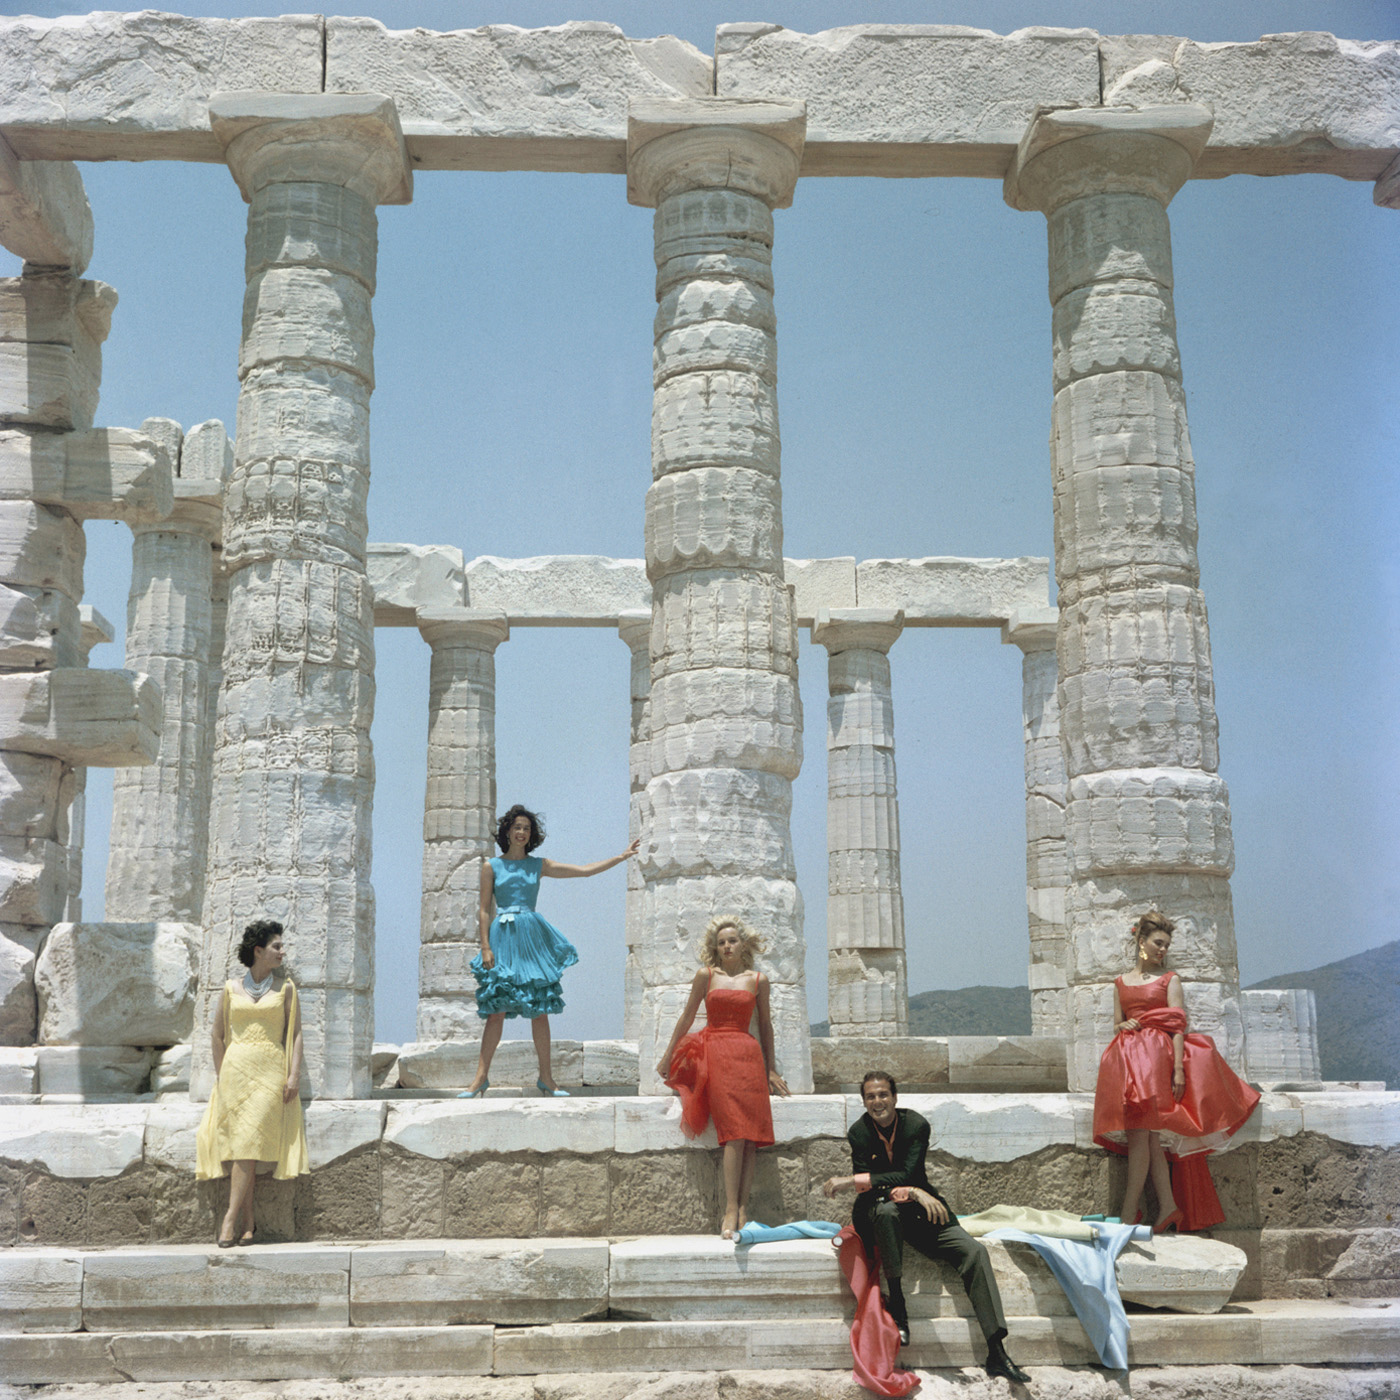 Dimitris Kritsas: Dimitris Kritsas, a fashionable young couturier, poses among the gleaming Doric columns of the temple to Poseidon at Sounion, 1961